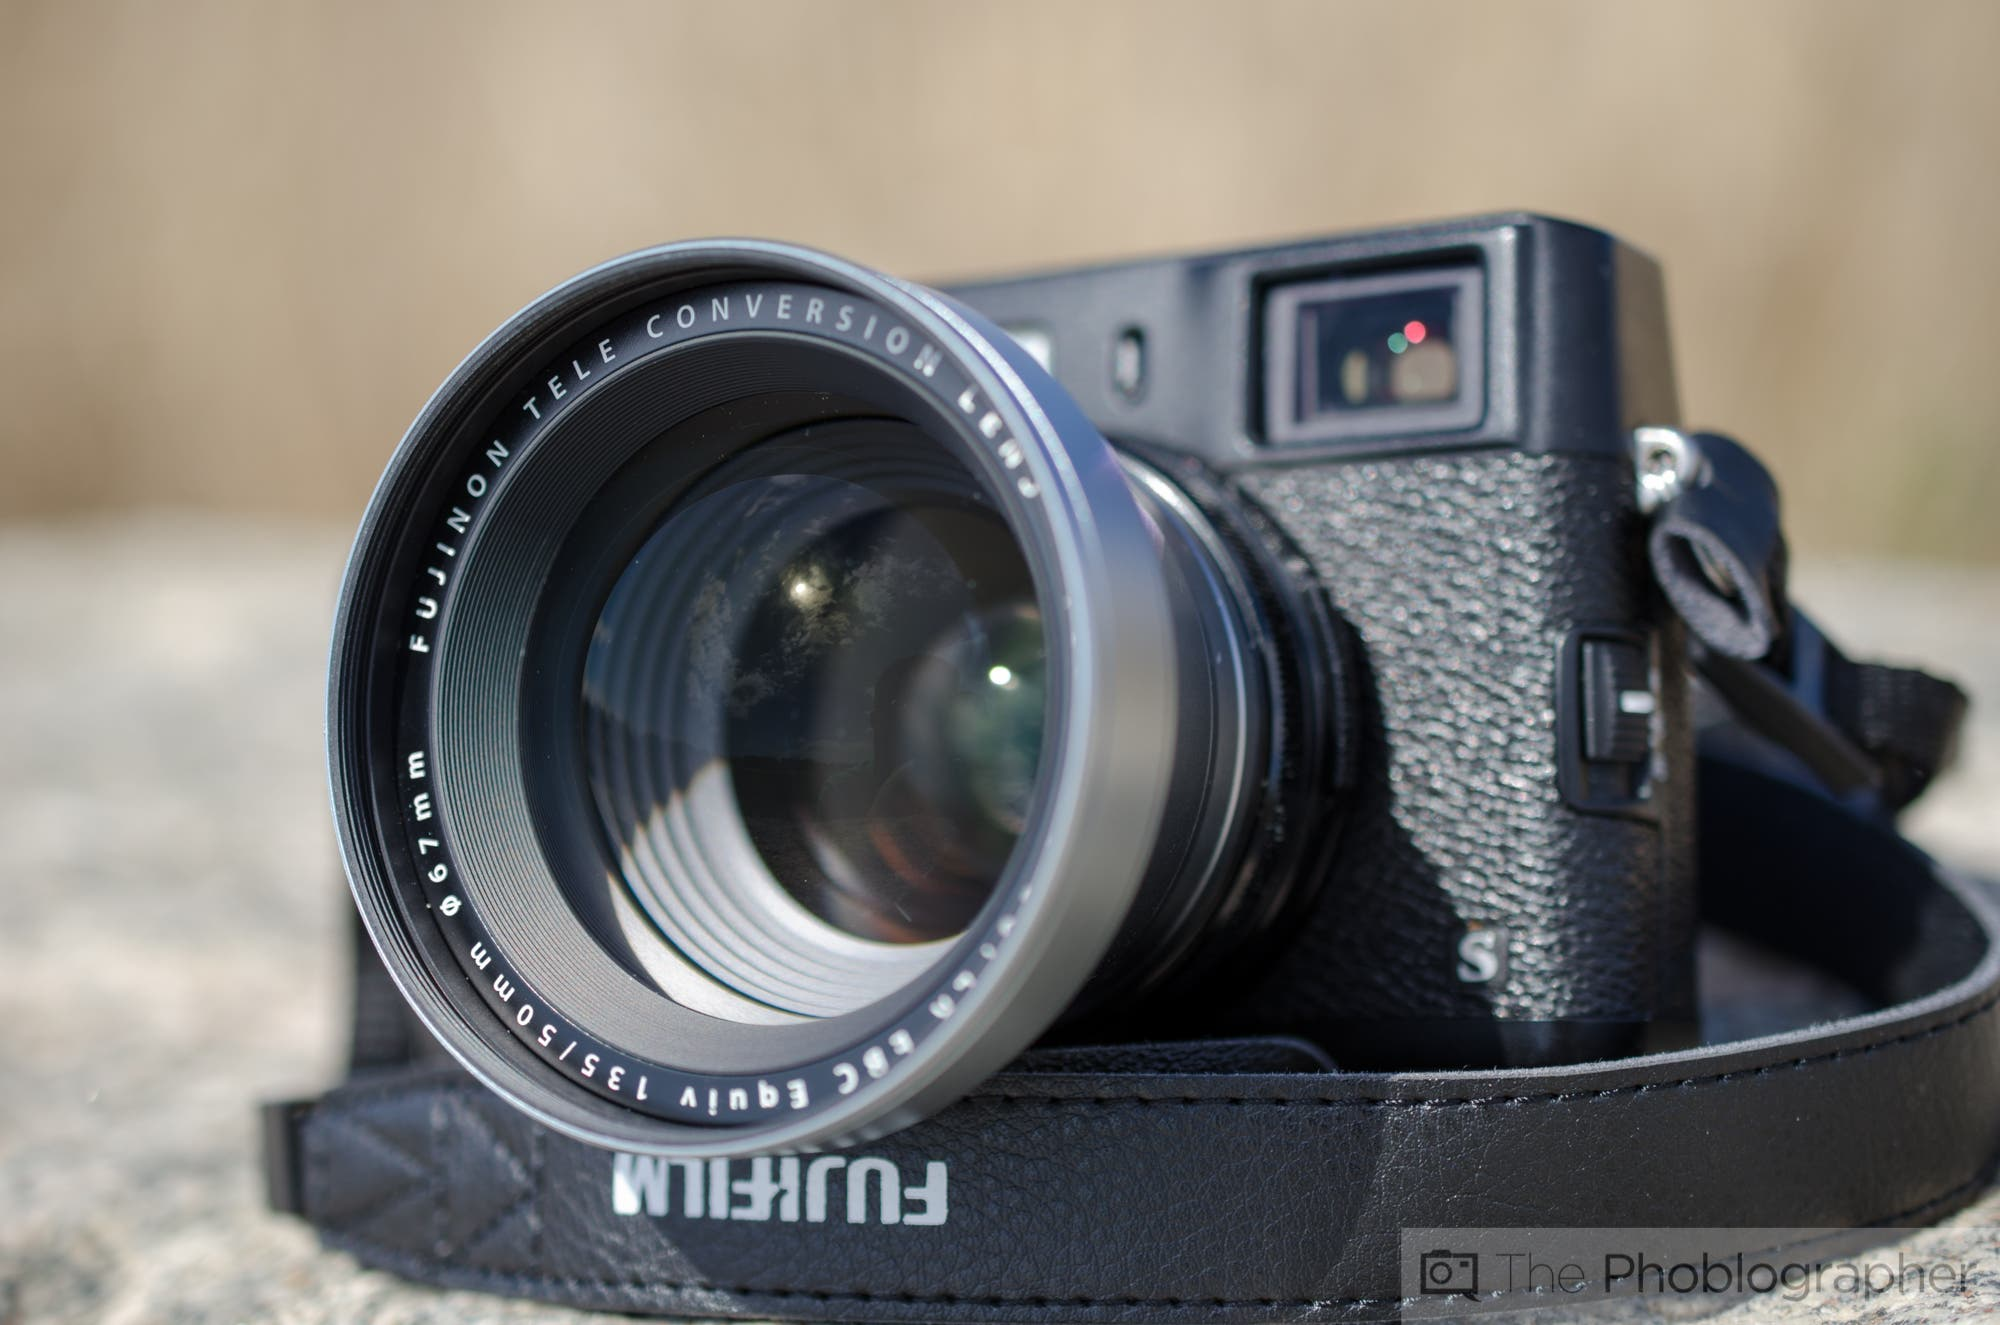 Review: Fujifilm TCL-X100 Teleconvertor For X100s/X100 - The